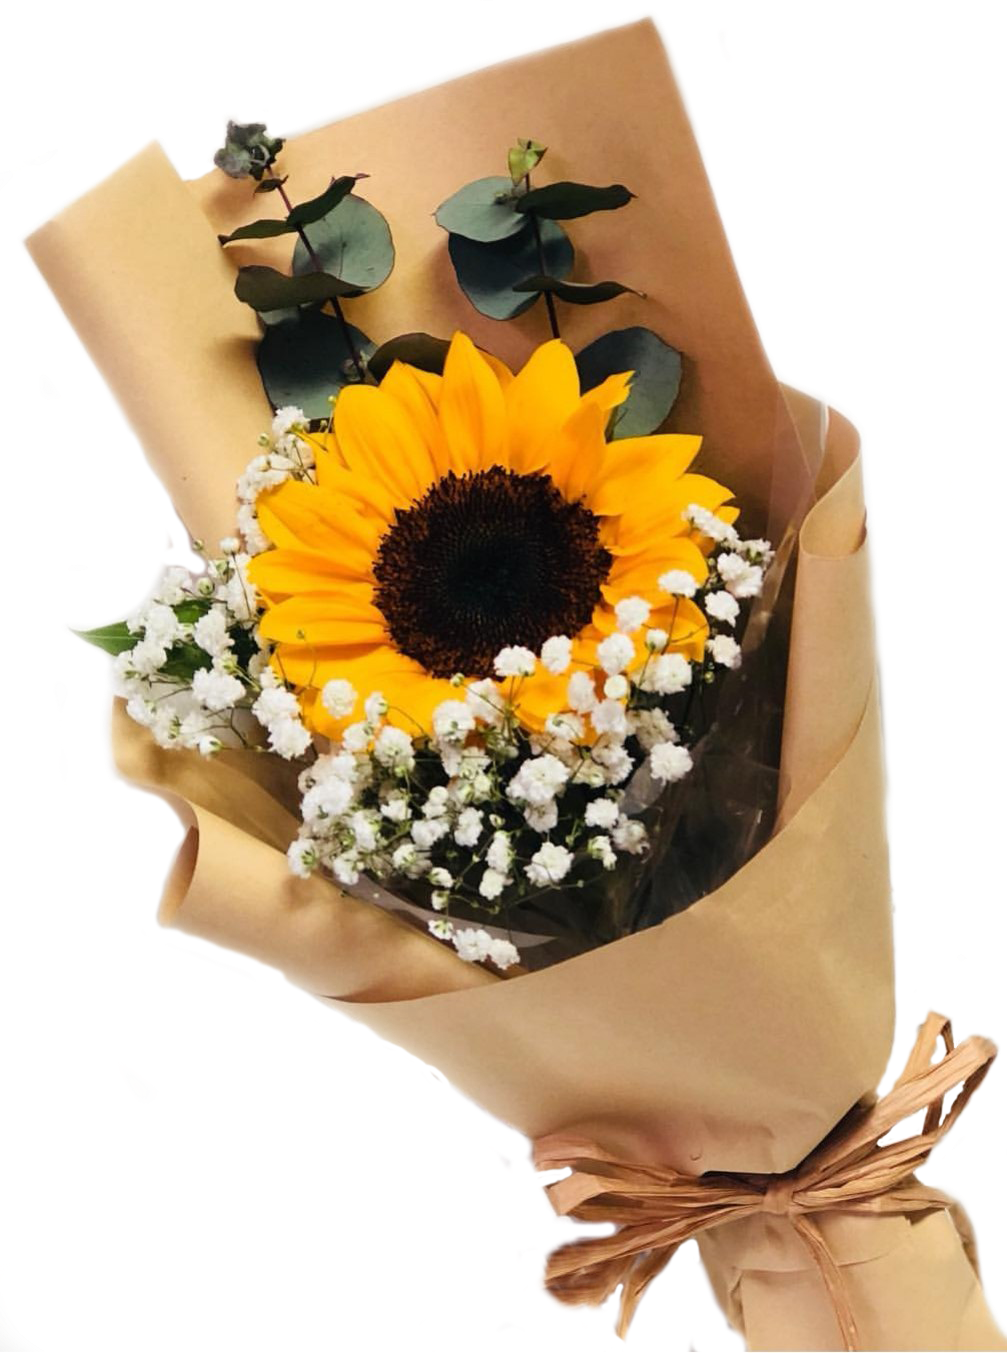 Valentine's Day bouquets under $50 - Sunflower and baby's breath